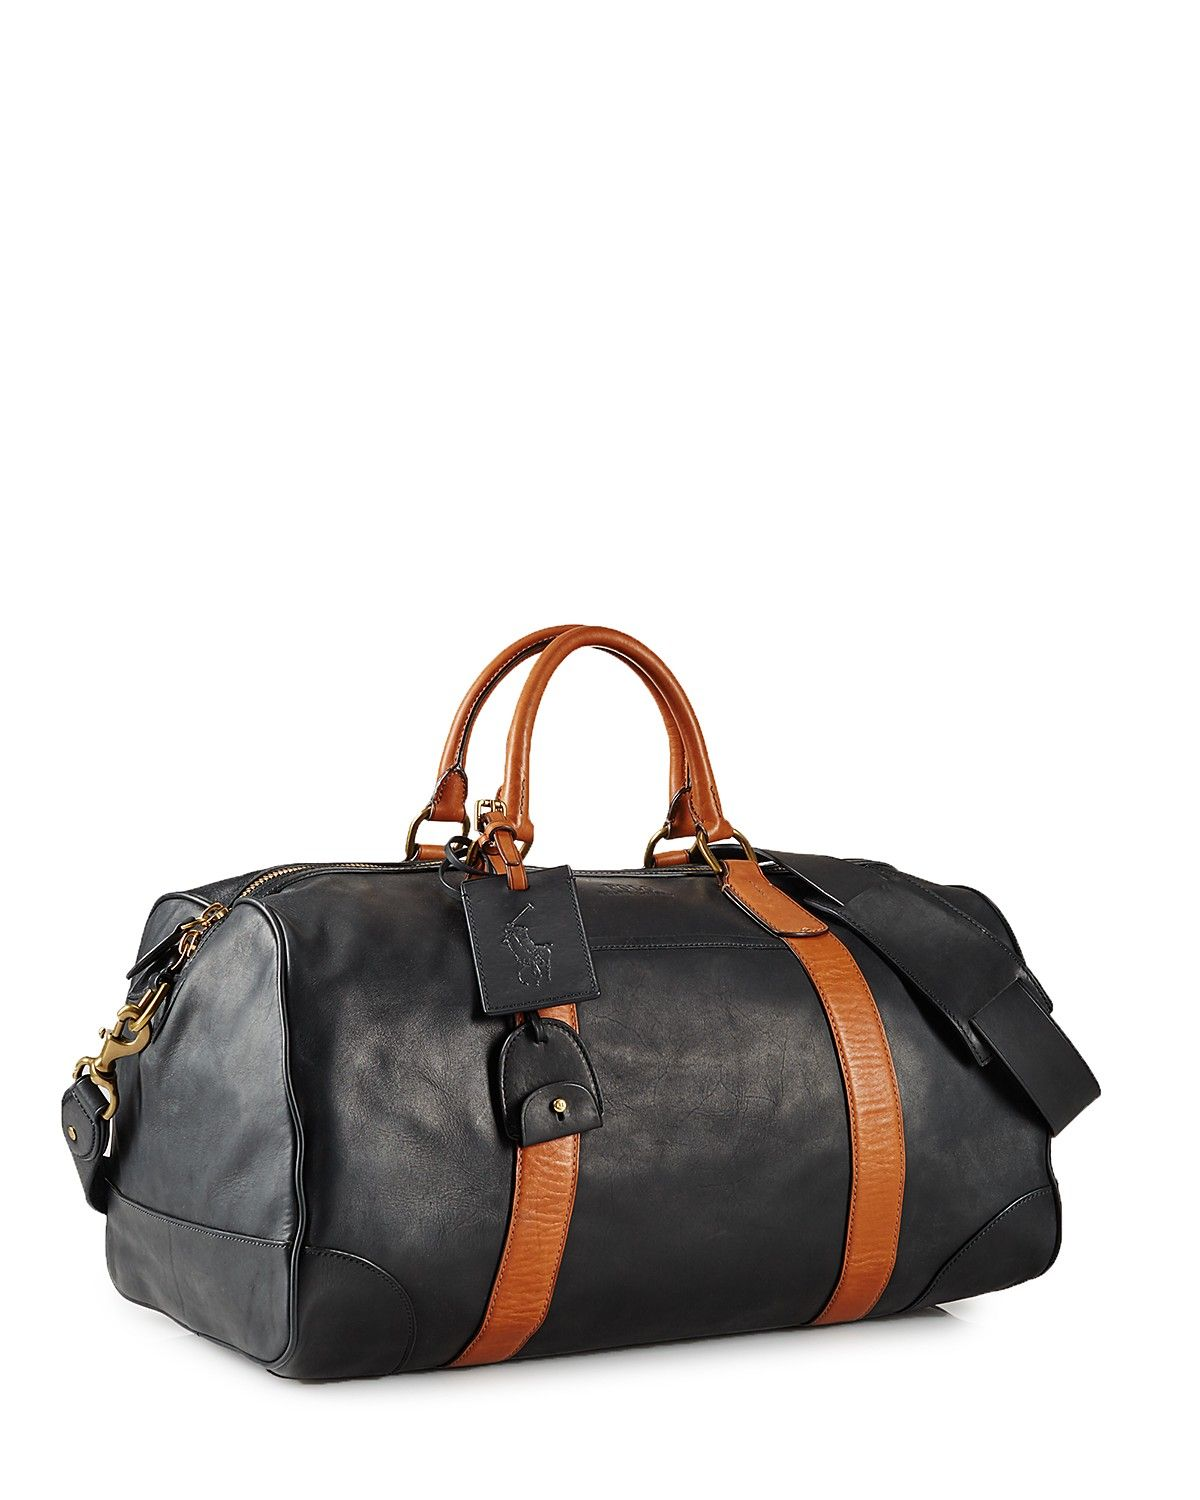 cb8f376473 Polo Ralph Lauren Two-Toned Leather Duffel Bag